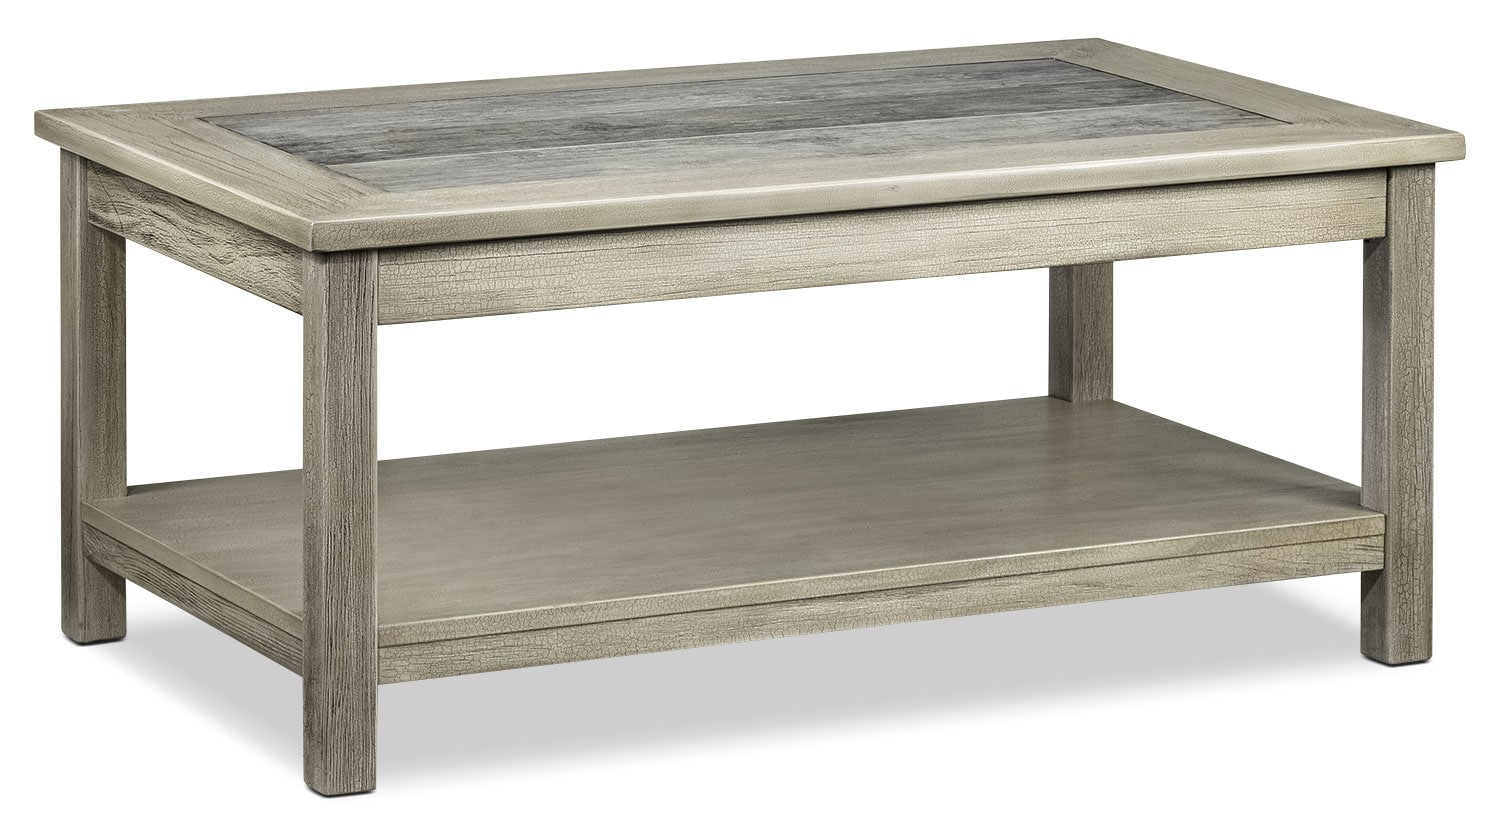 Thomas Table de centre - beige naturel